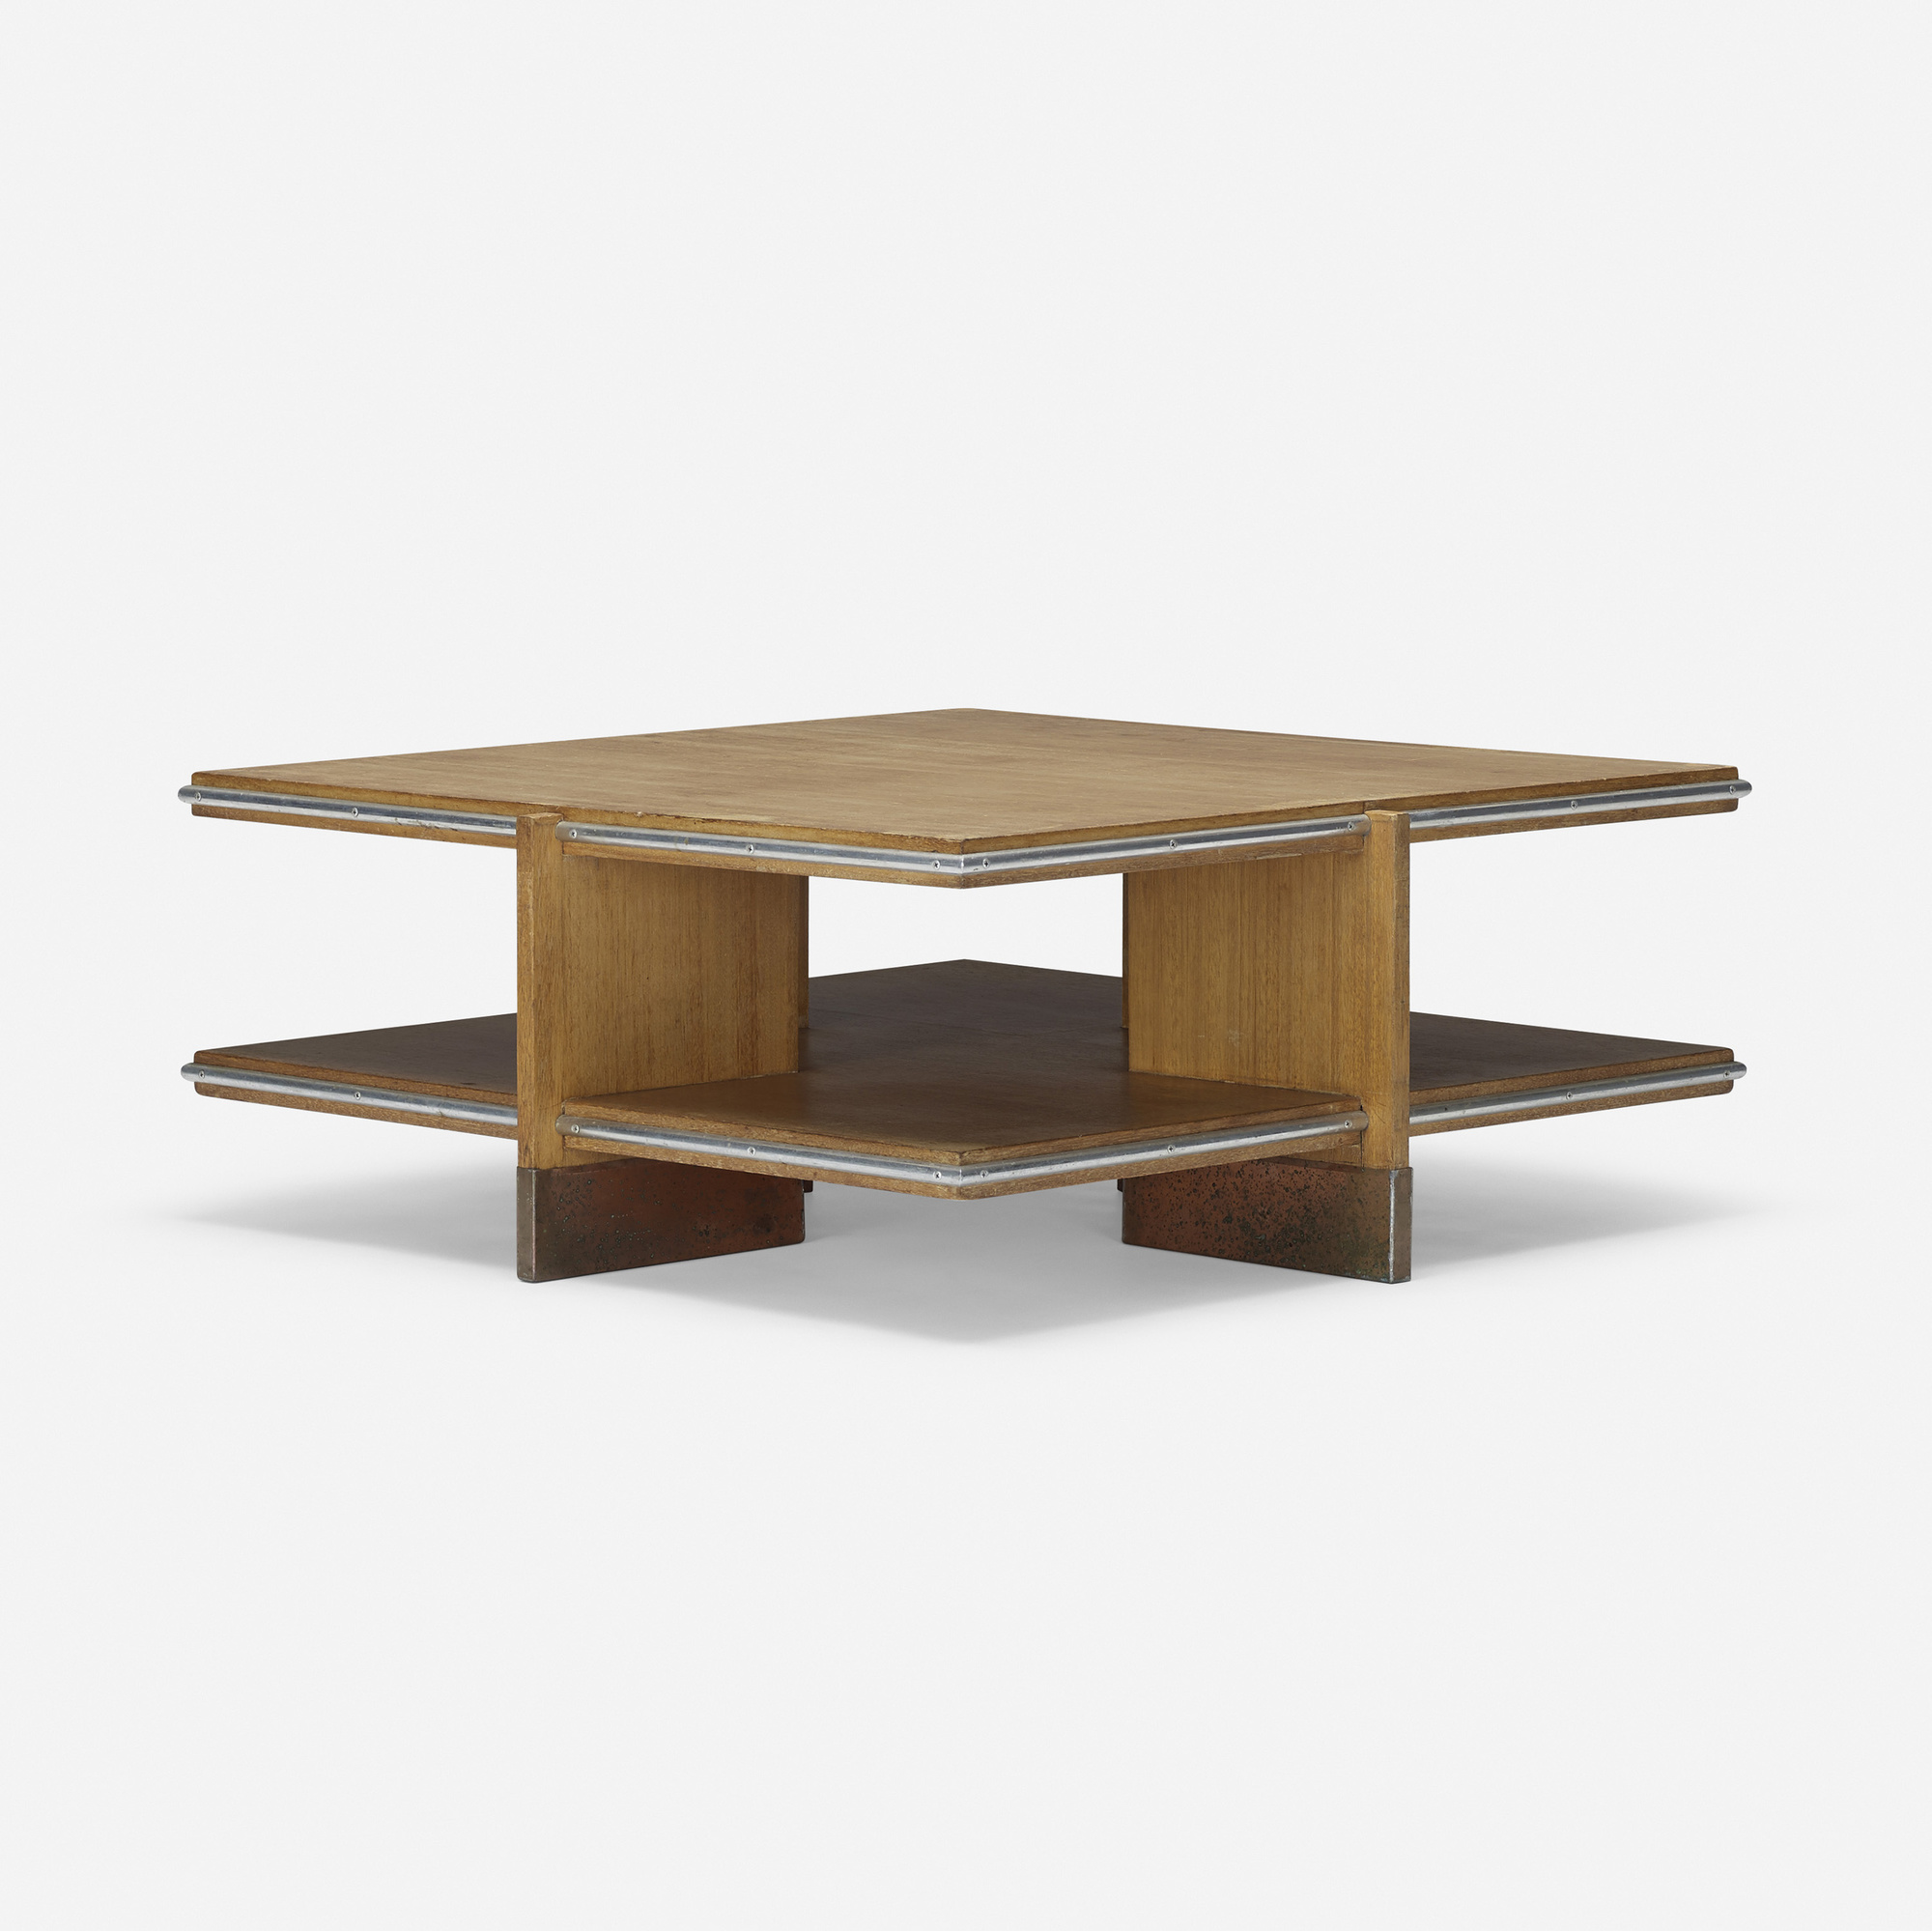 183: Frank Lloyd Wright / Coffee Table From Price Tower, Bartlesville,  Oklahoma (